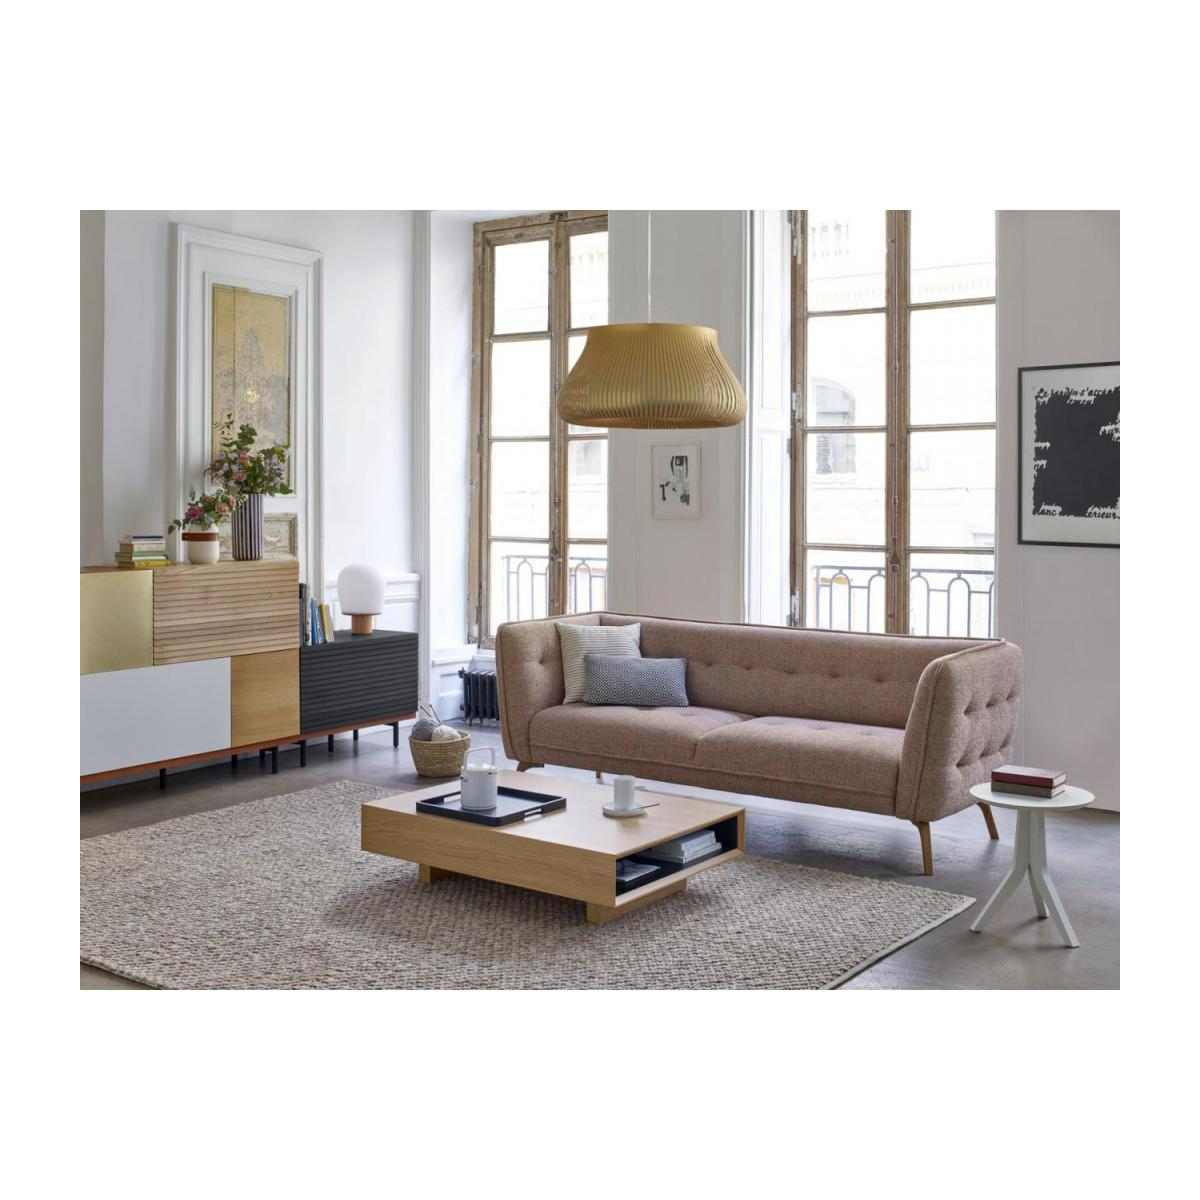 3 seater sofa in Lecce fabric, blue reef and natural oak feet n°5